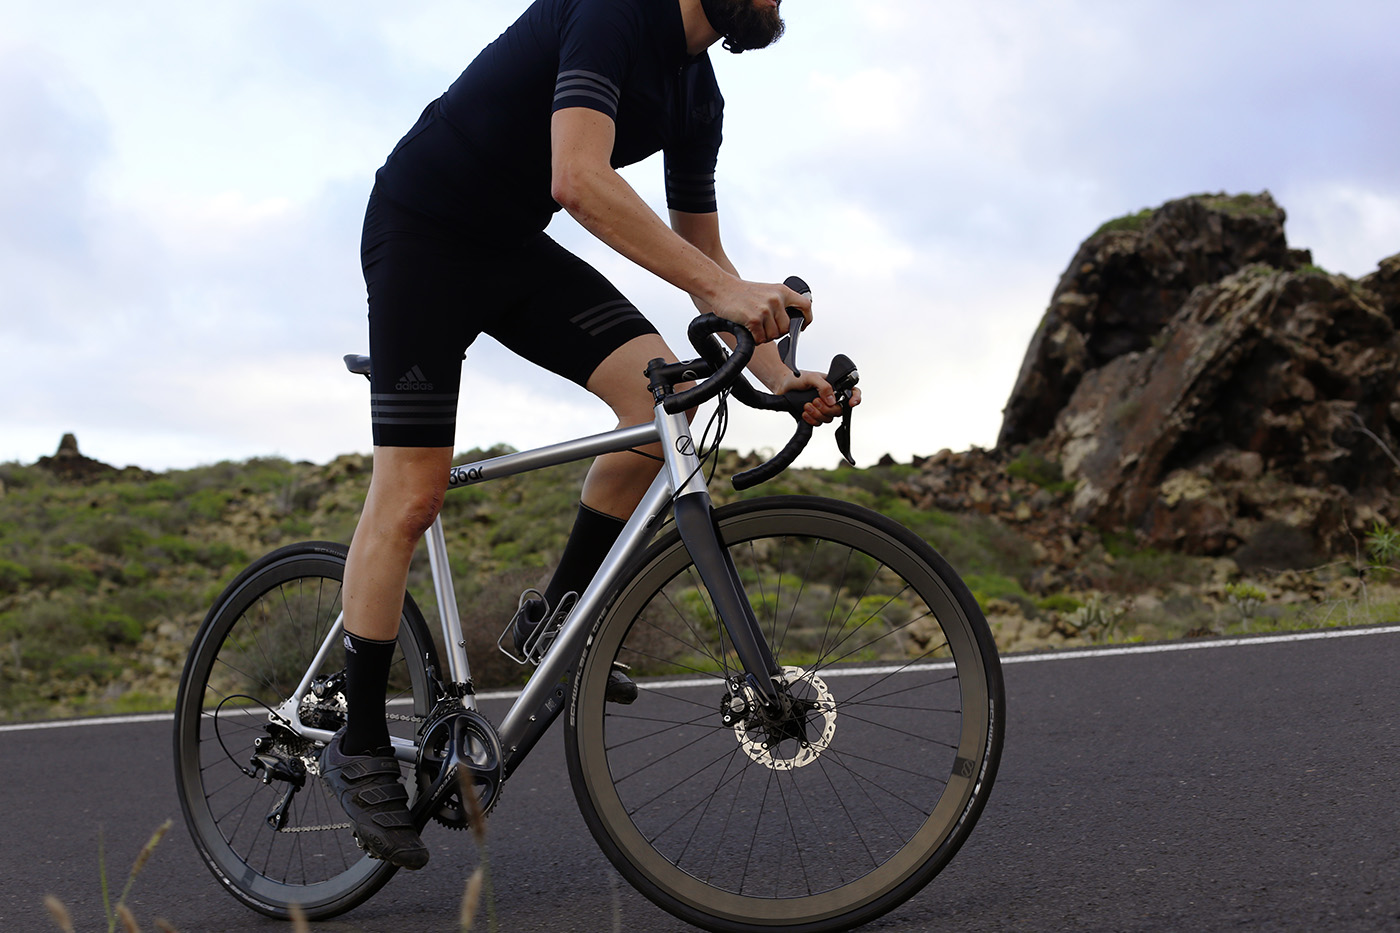 8bar-mitte-road-bike-raw-lanzarote_3564x_s